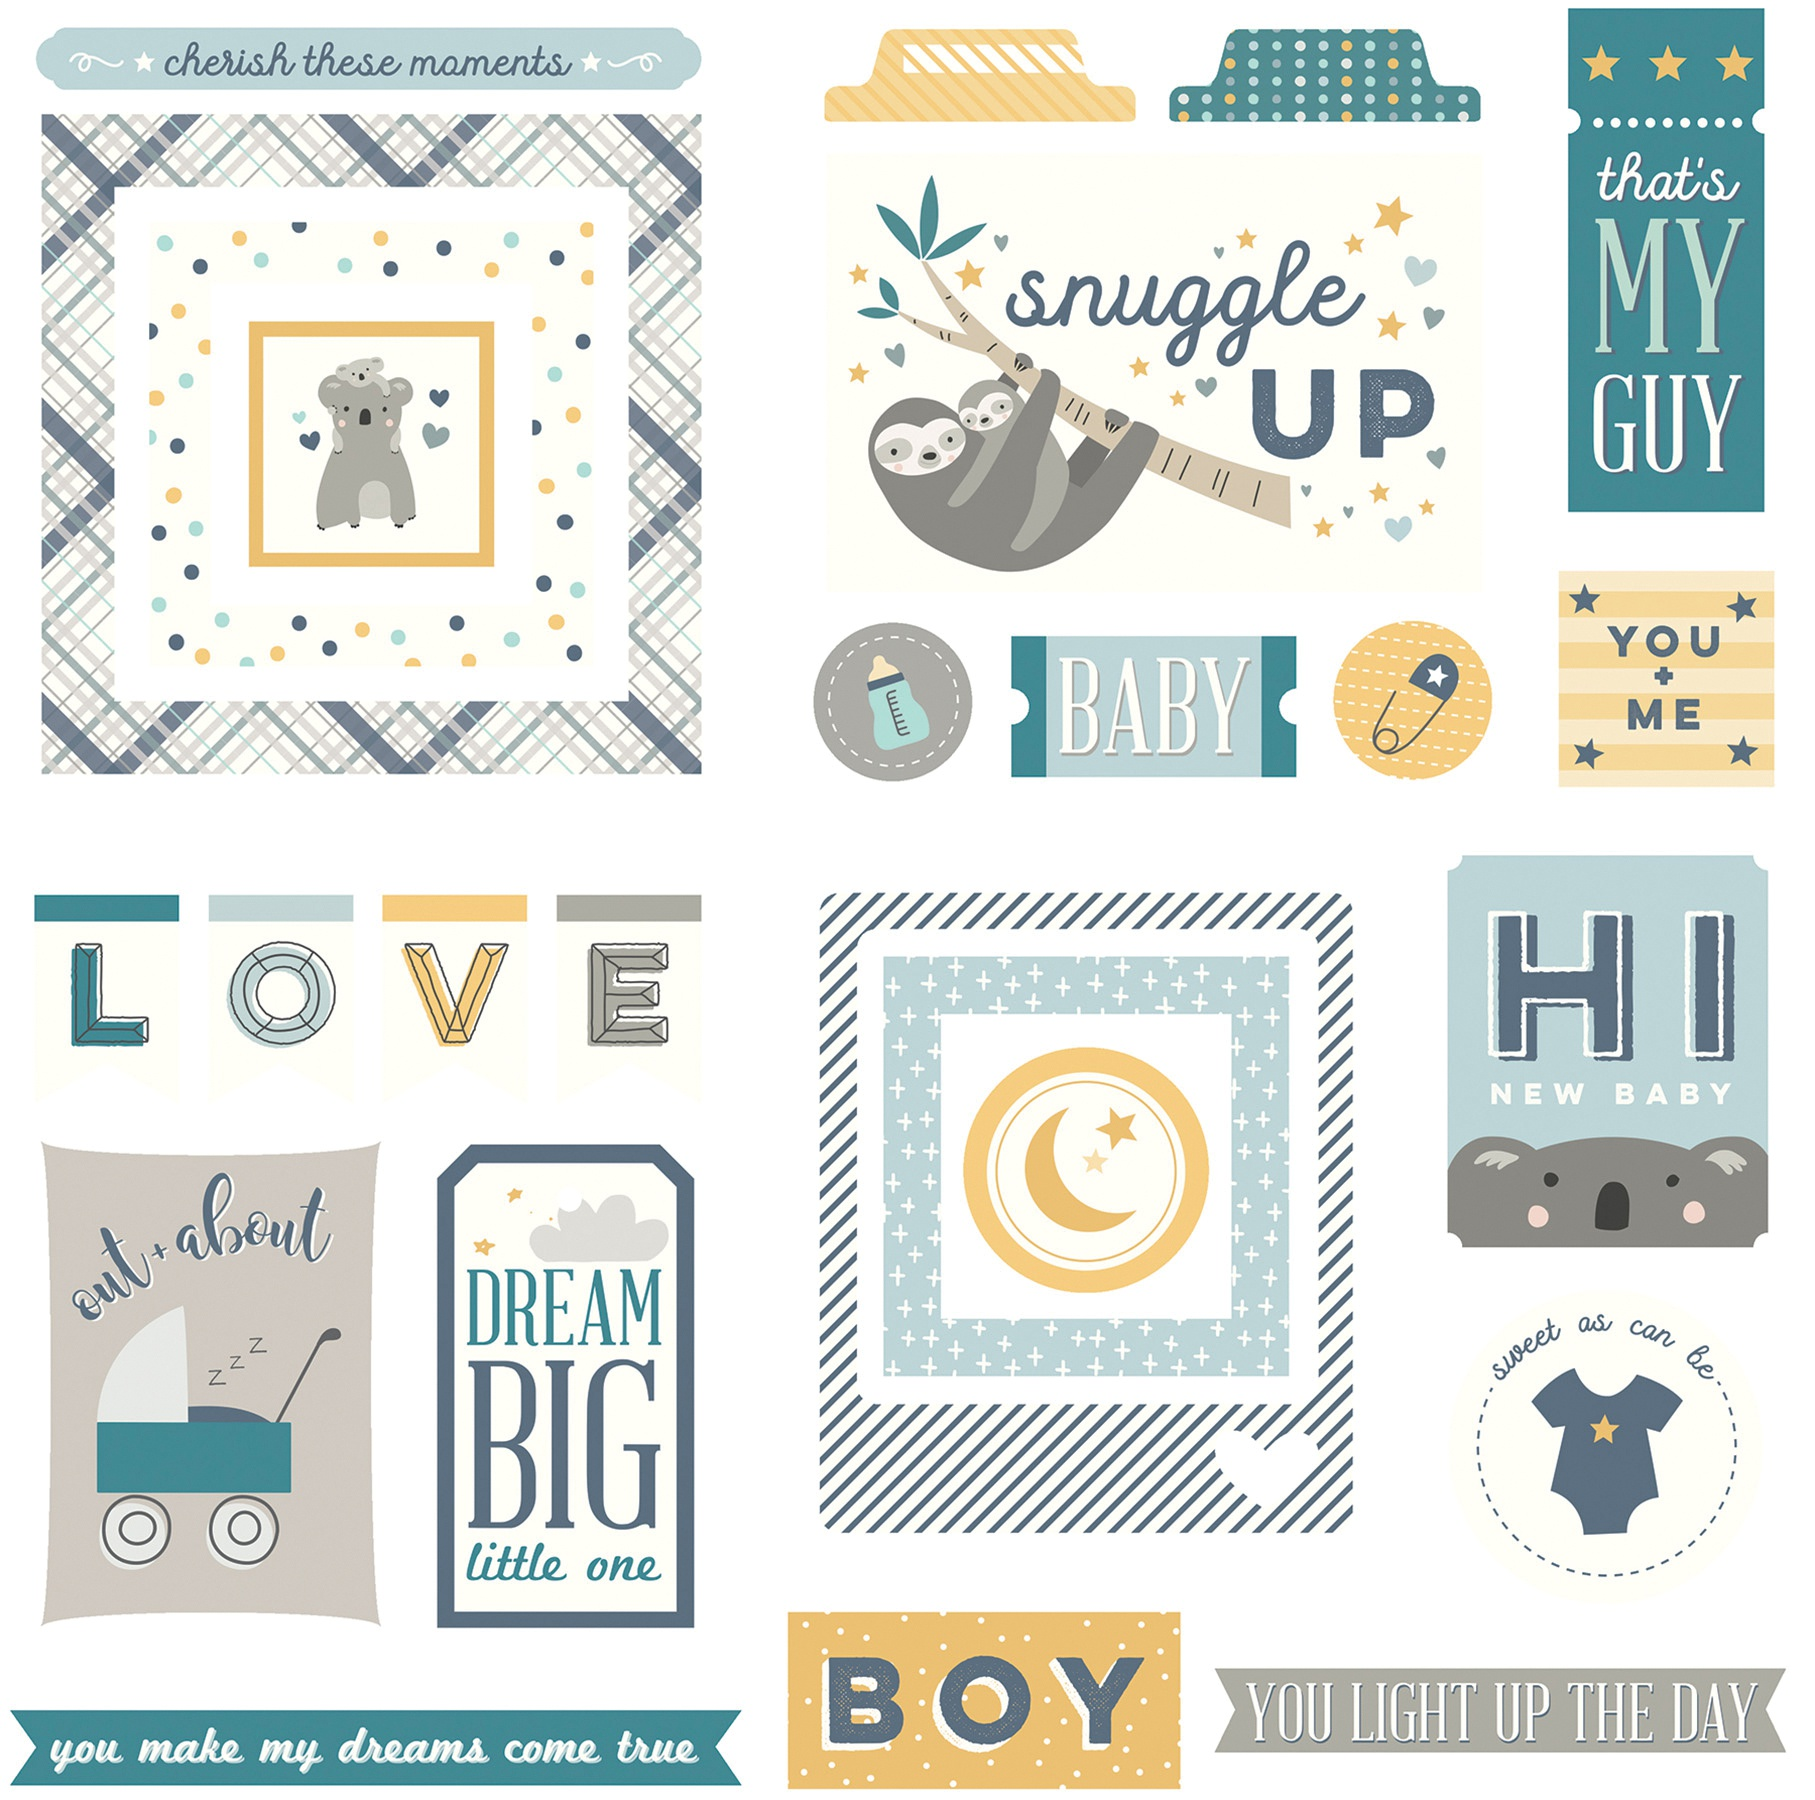 PhotoPlay - Snuggle Up Boy Collection - Cardstock Ephemera Die Cuts